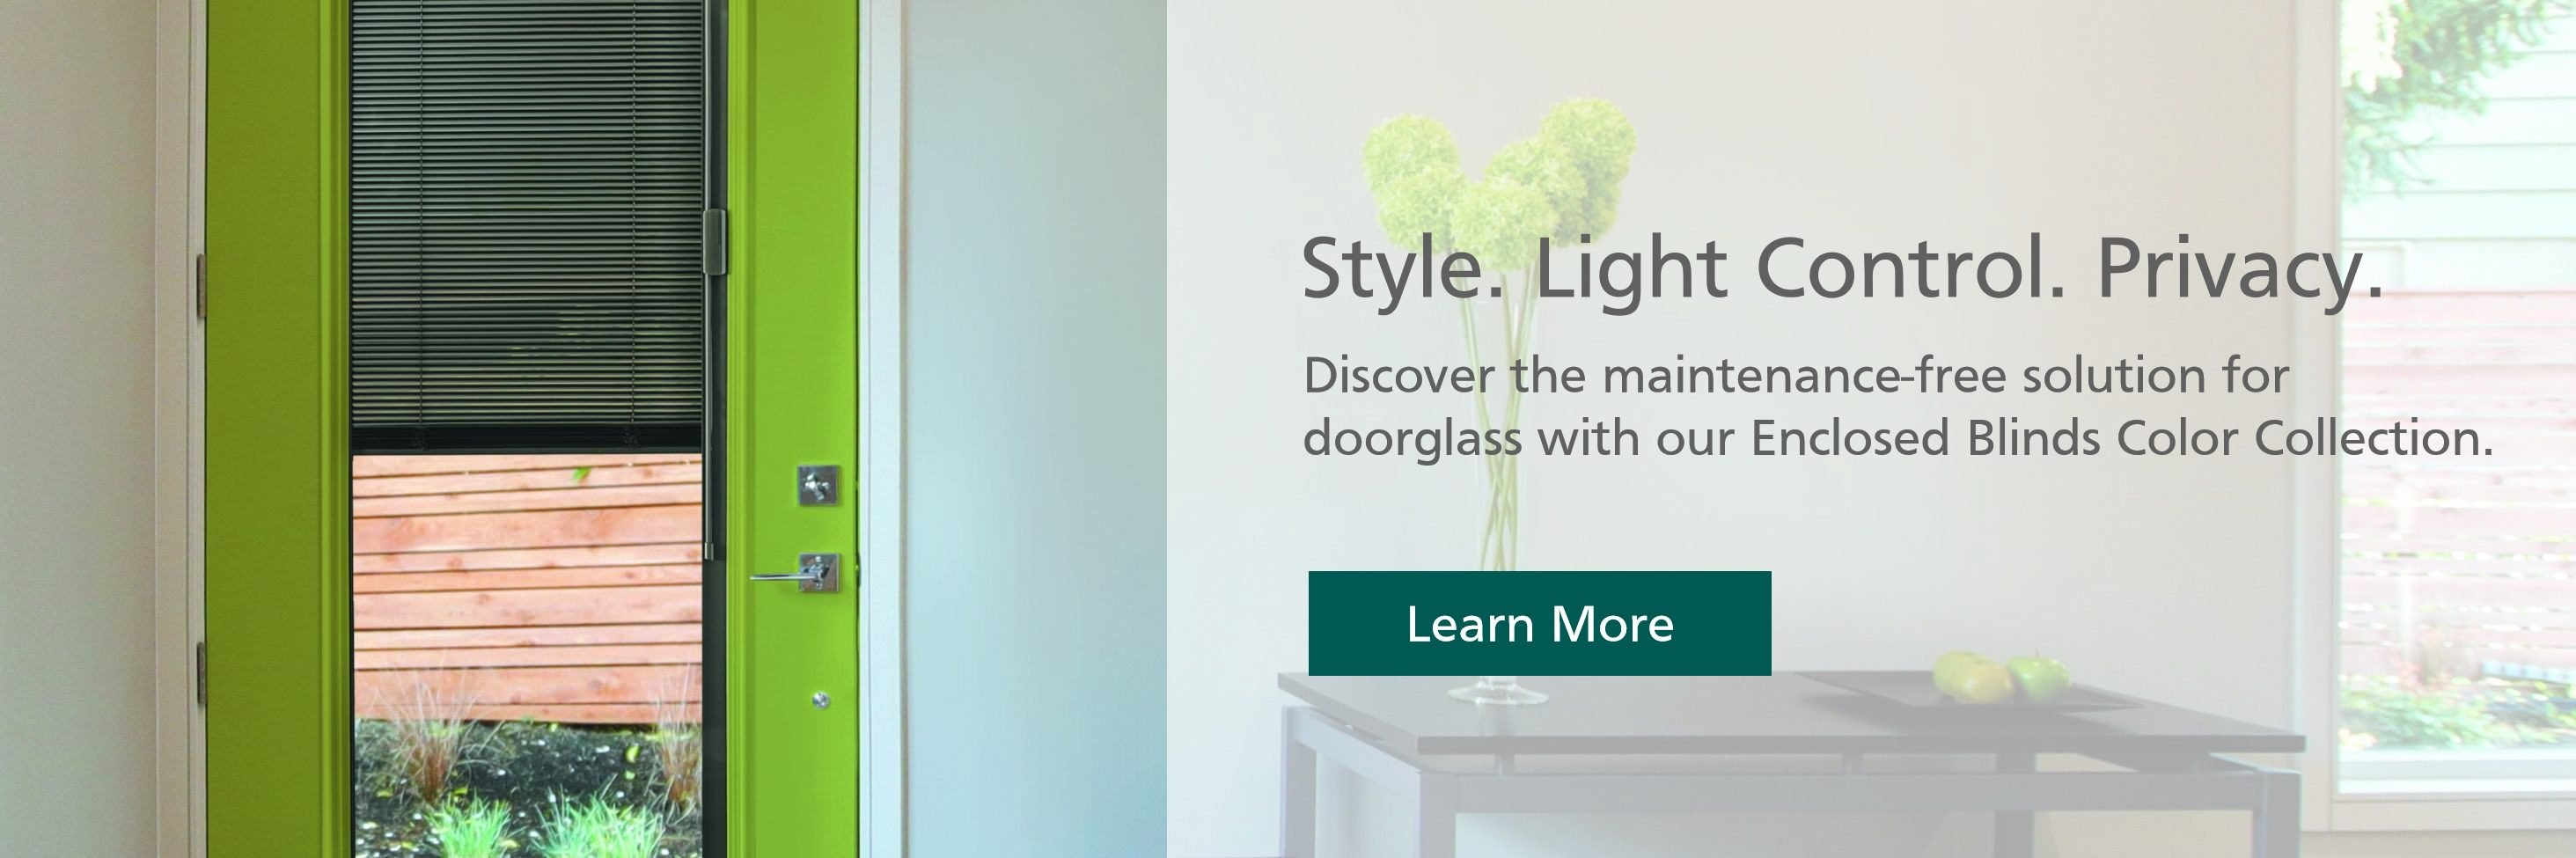 Discover the maintenance-free solution for doorglass with our Enclosed Blinds Color Collection.